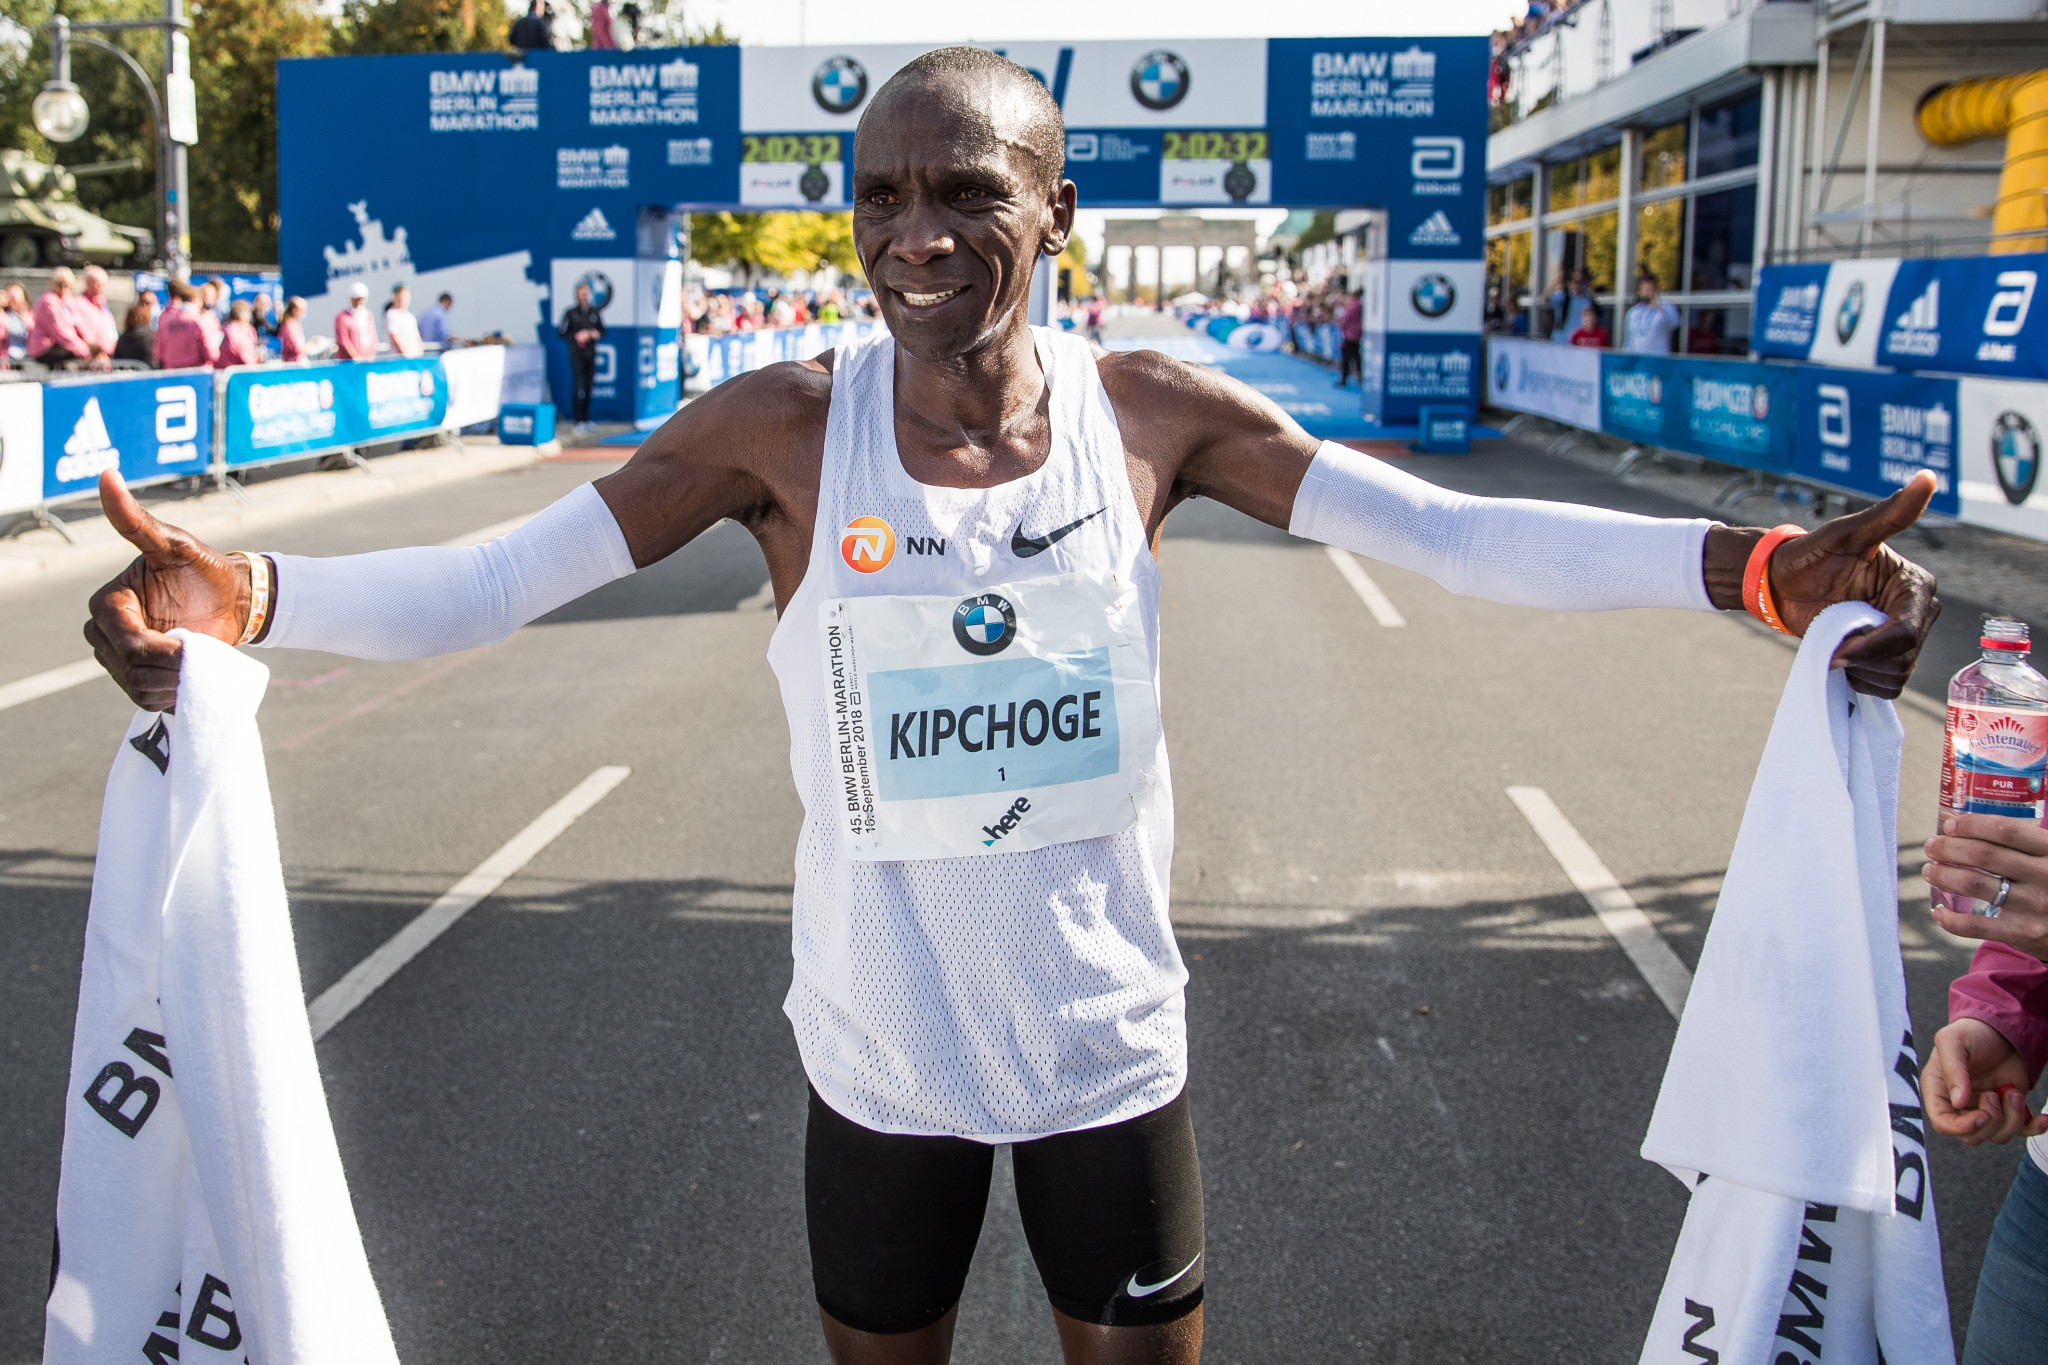 Vienna to stage Kipchoge's sub-two hour marathon attempt in October